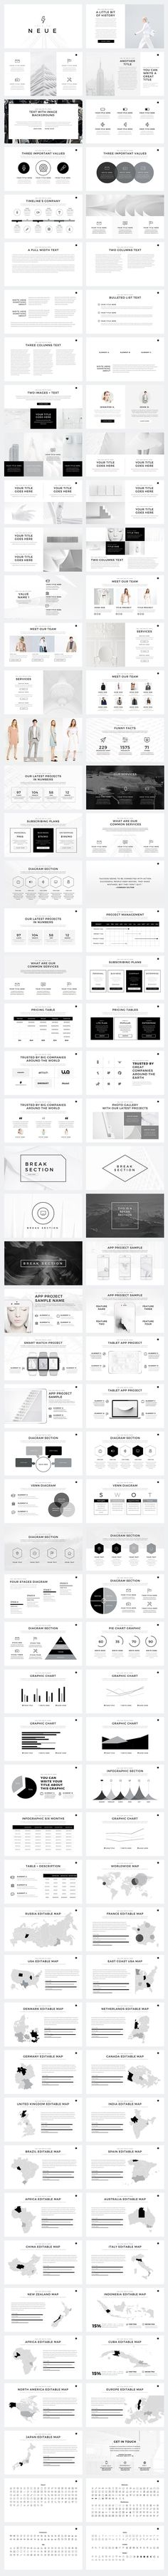 Neue Minimal Keynote Template has a basic clean layout which will help your content stand out. The slides are effective but rather simple in terms of graphic design. Design Web, Slide Design, Layout Design, Keynote Design, Brochure Design, Brochure Ideas, Booklet Design, Brochure Layout, Design Presentation